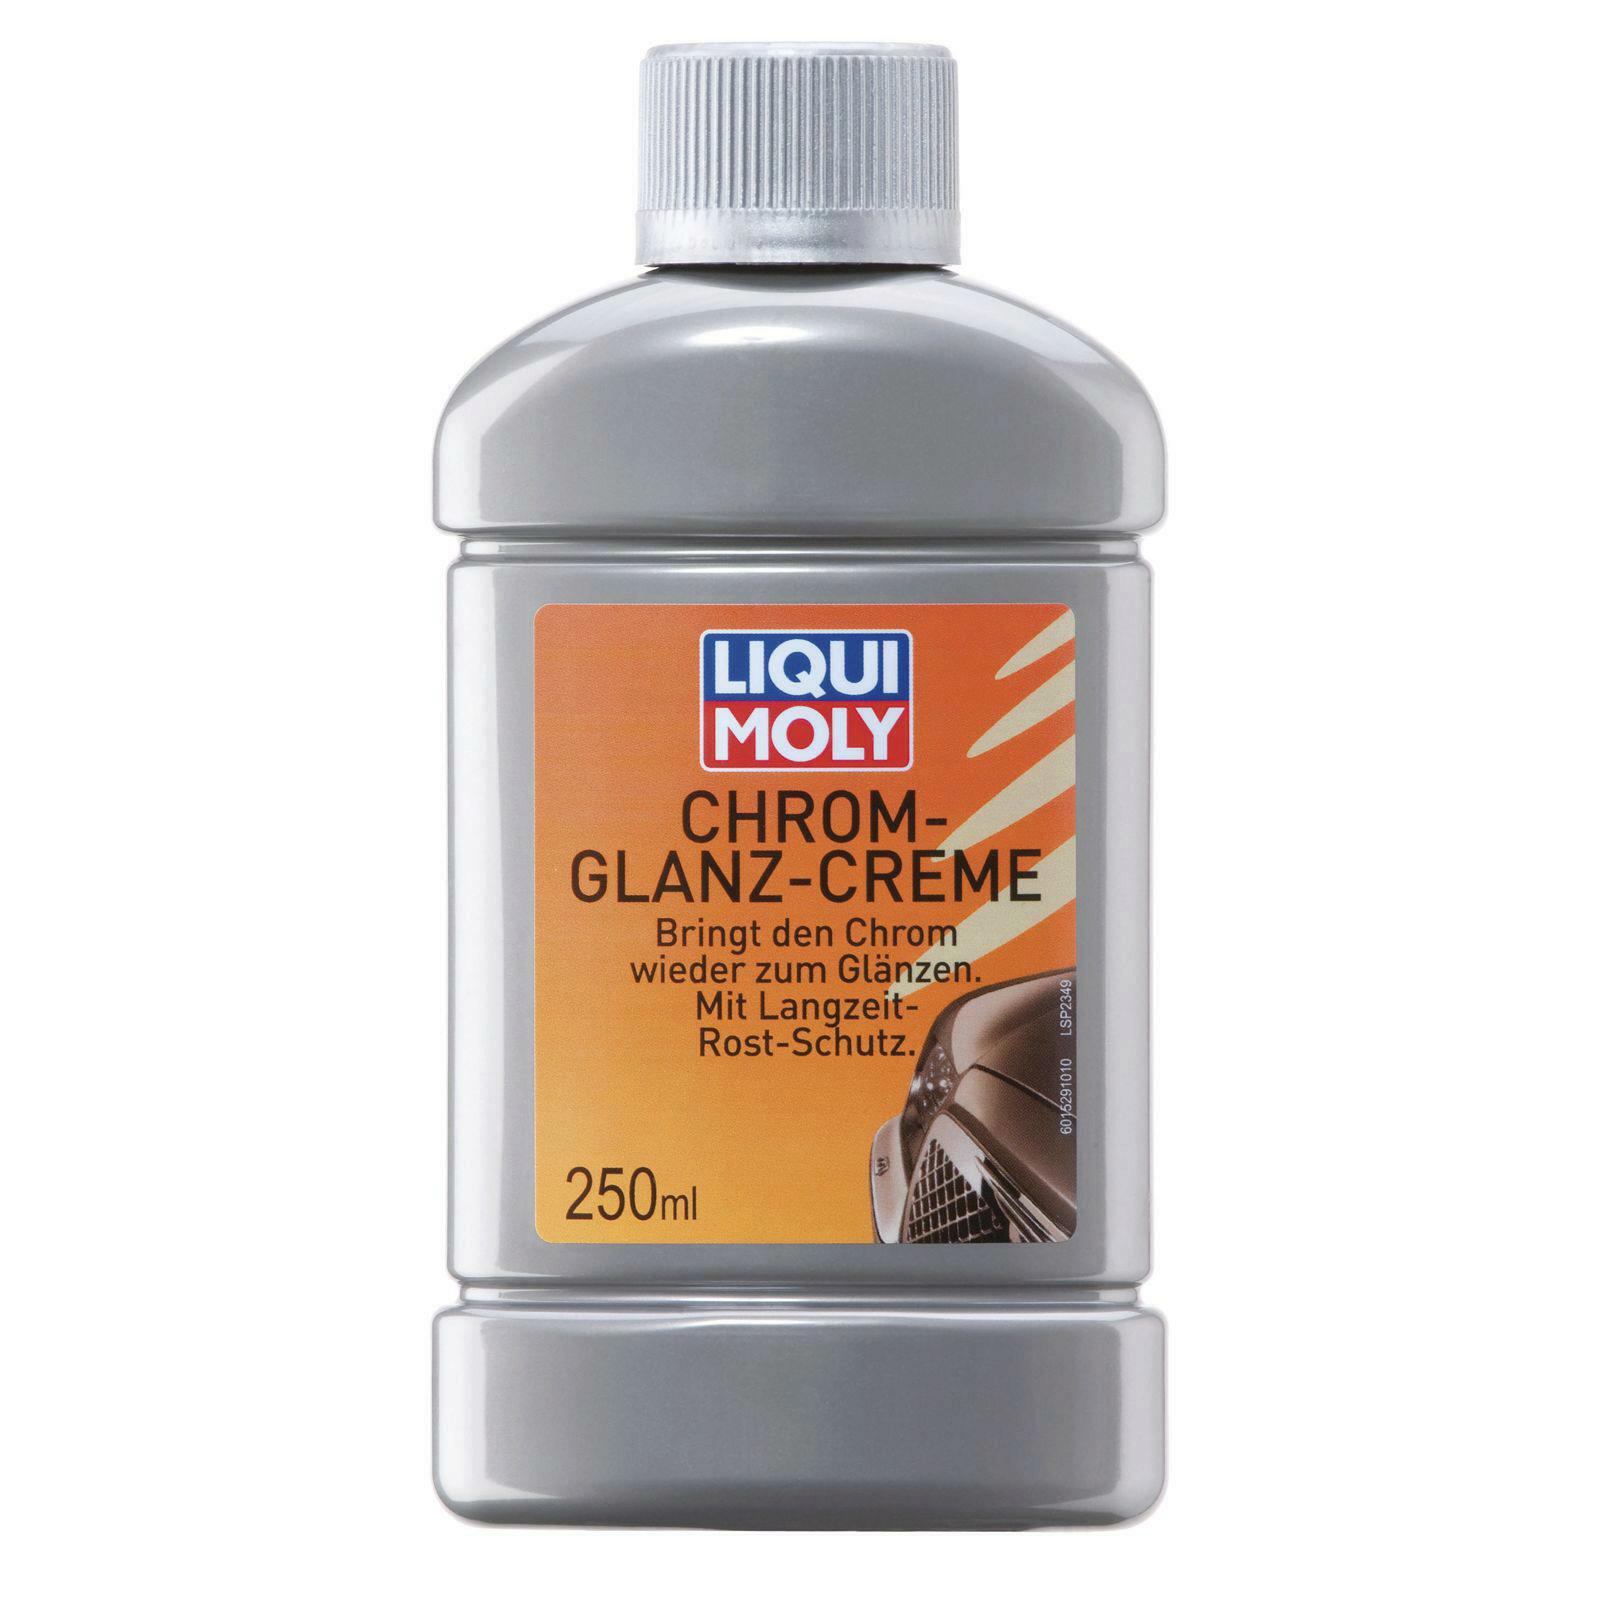 Liqui Moly Chrom-Glanz-Creme 250ml